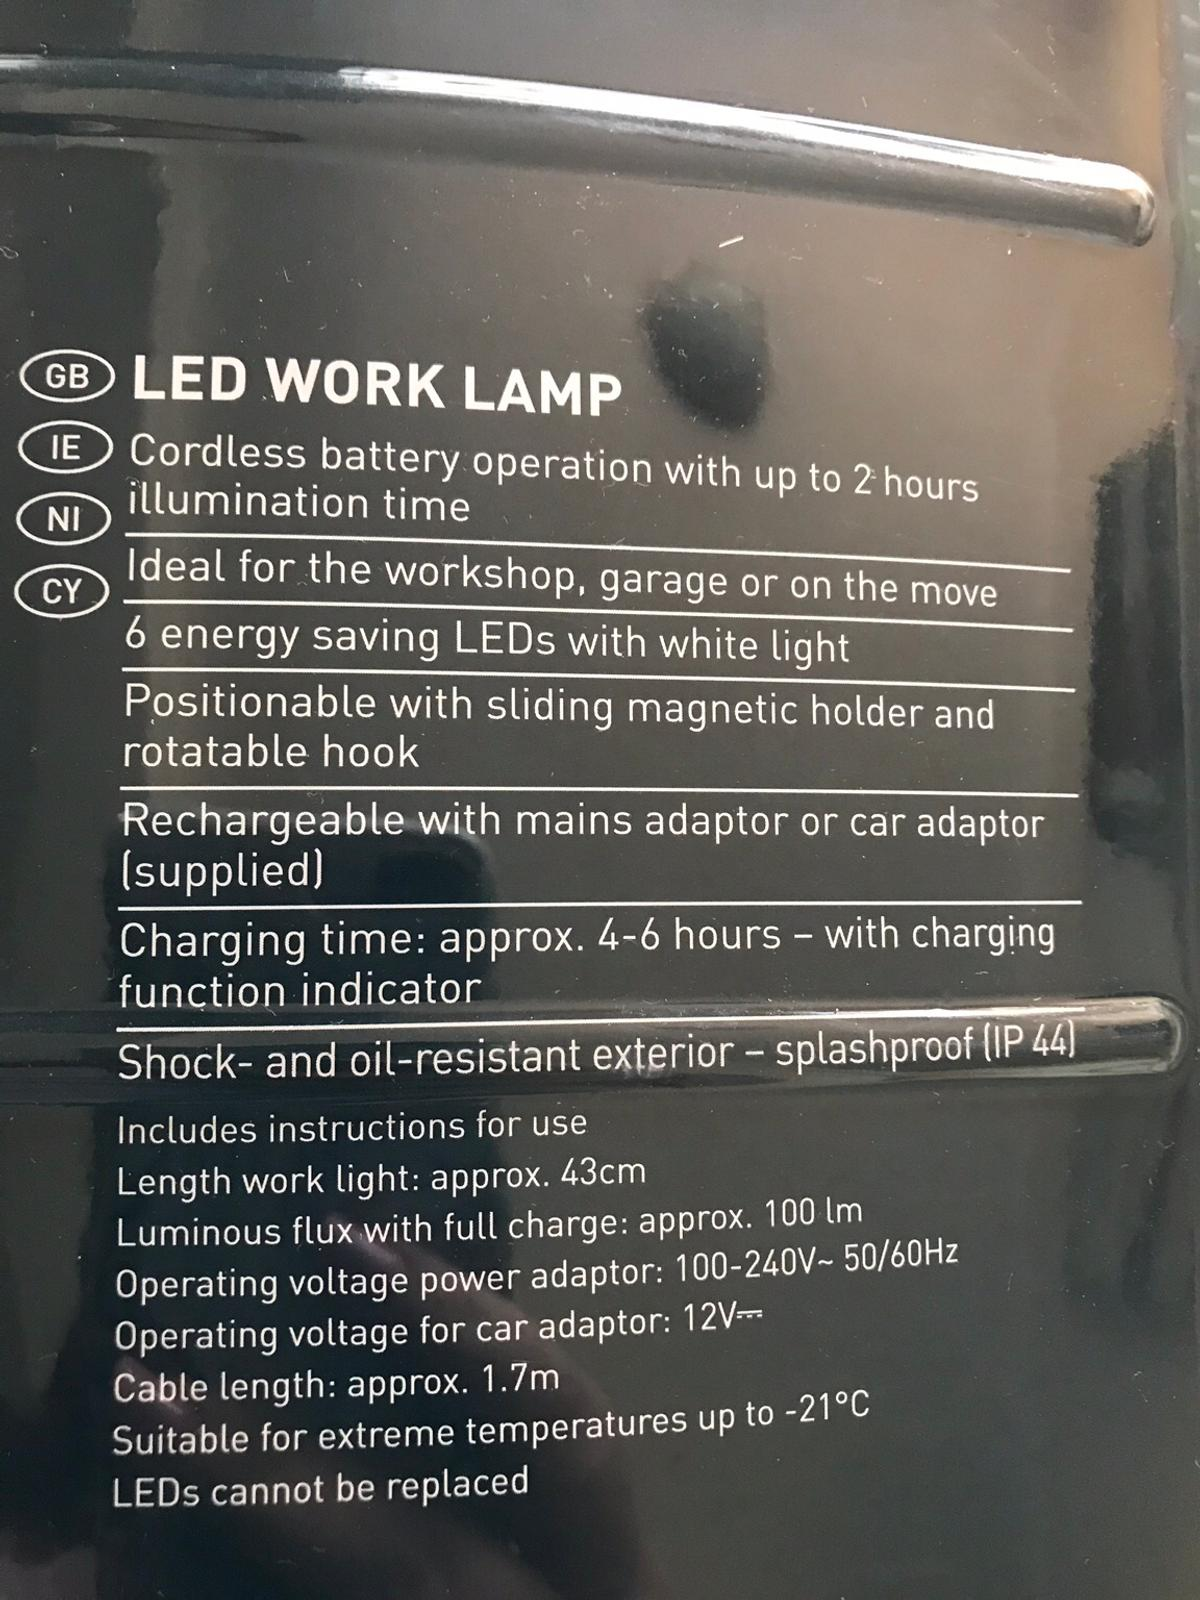 Livarno Led Work Lamp In Cv11 Nuneaton And Bedworth For 12 00 For Sale Shpock